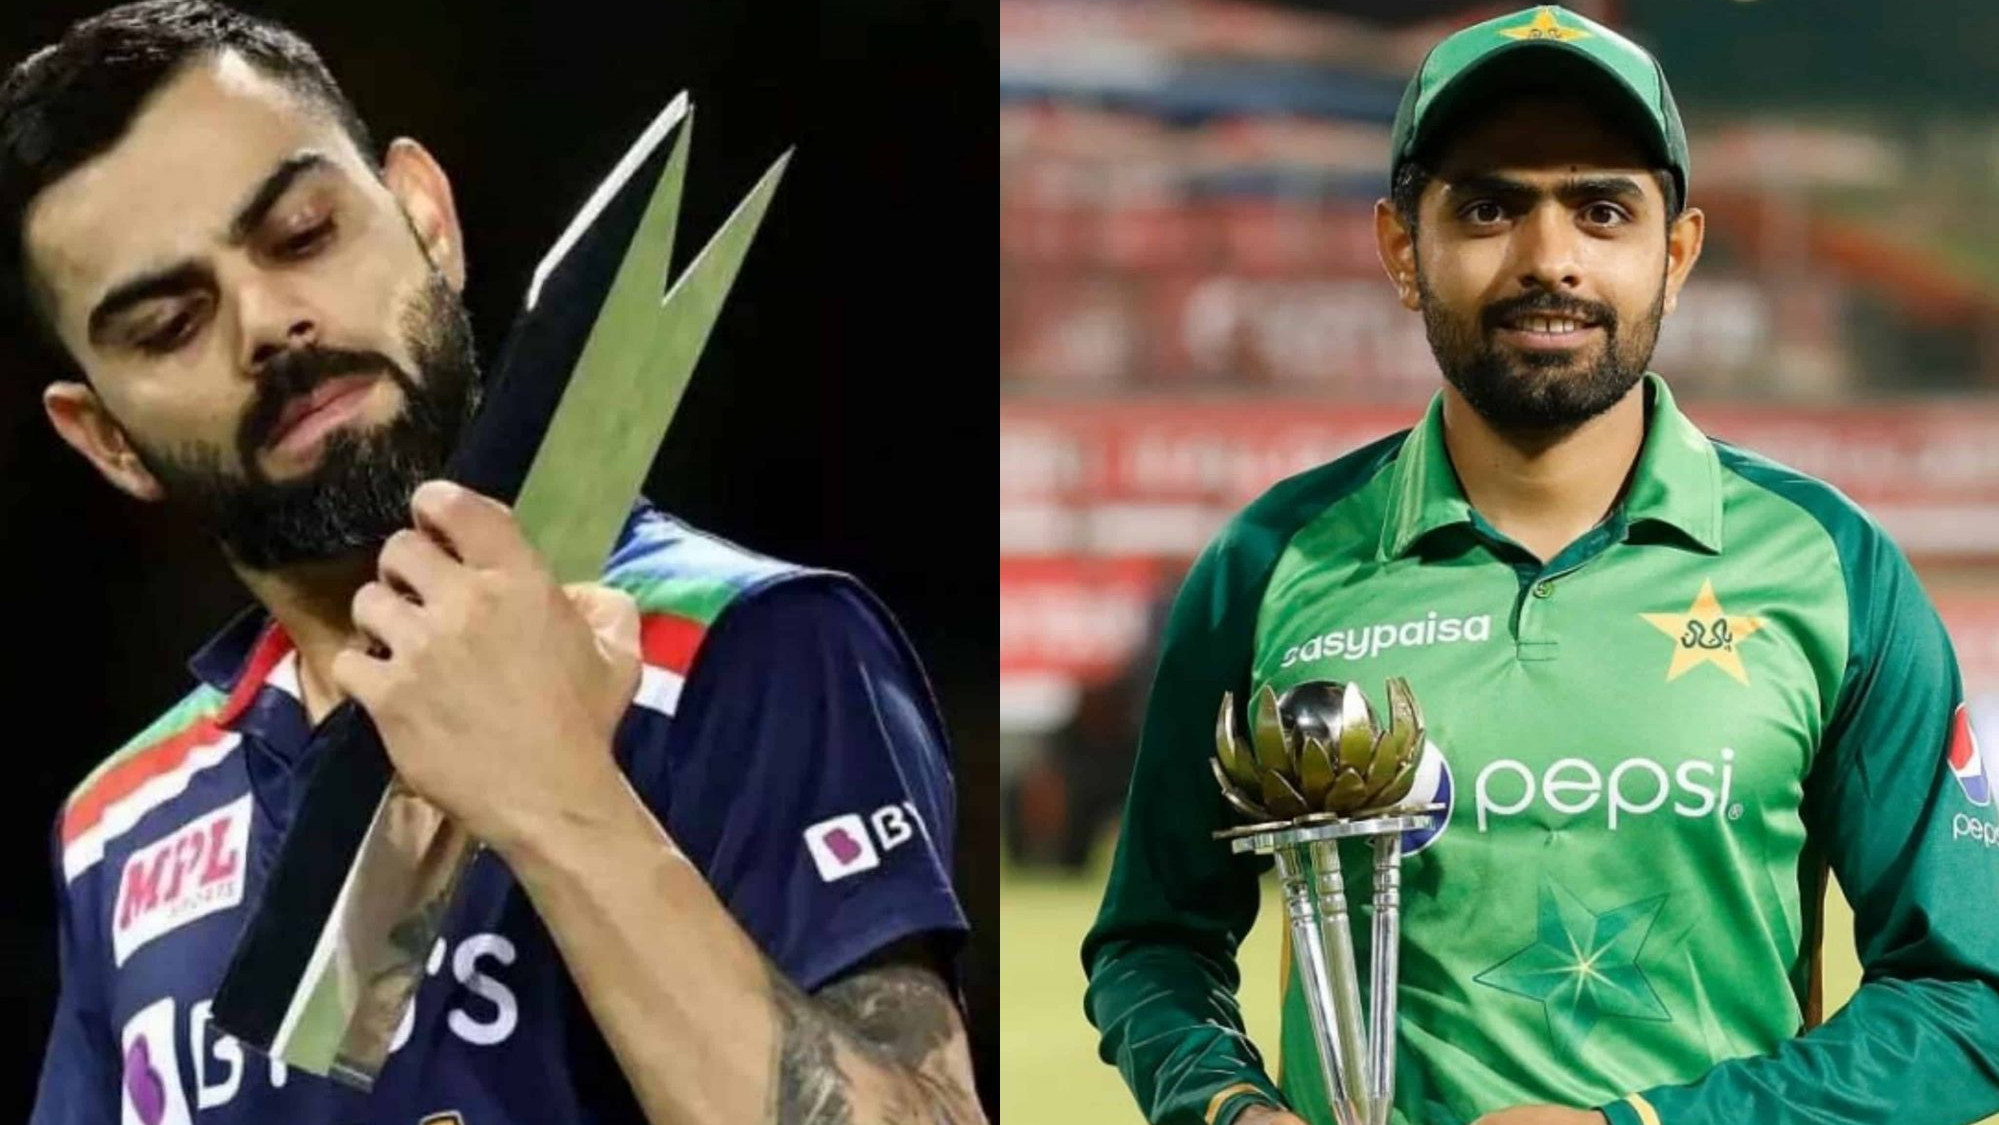 """T20 World Cup 2021: """"If you ask me, we will win"""", Babar Azam ahead of India-Pakistan clash"""